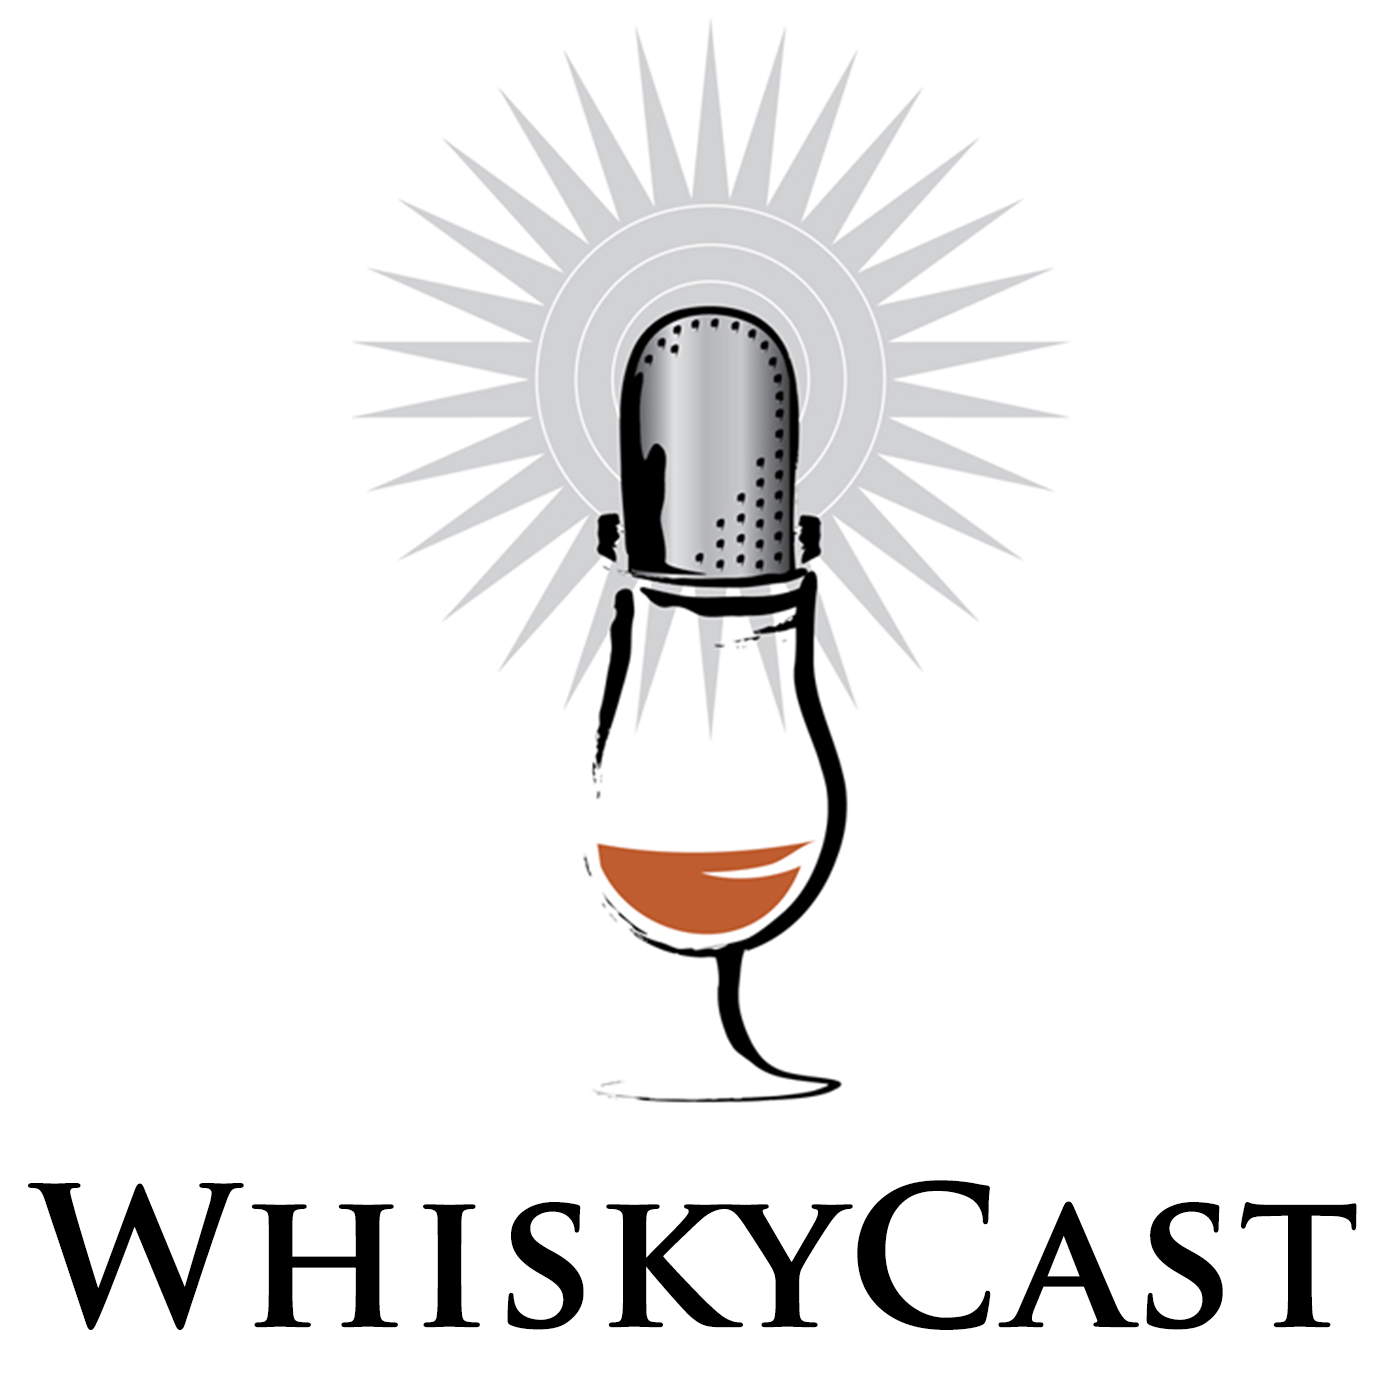 WhiskyCast Episode 483: June 13, 2014